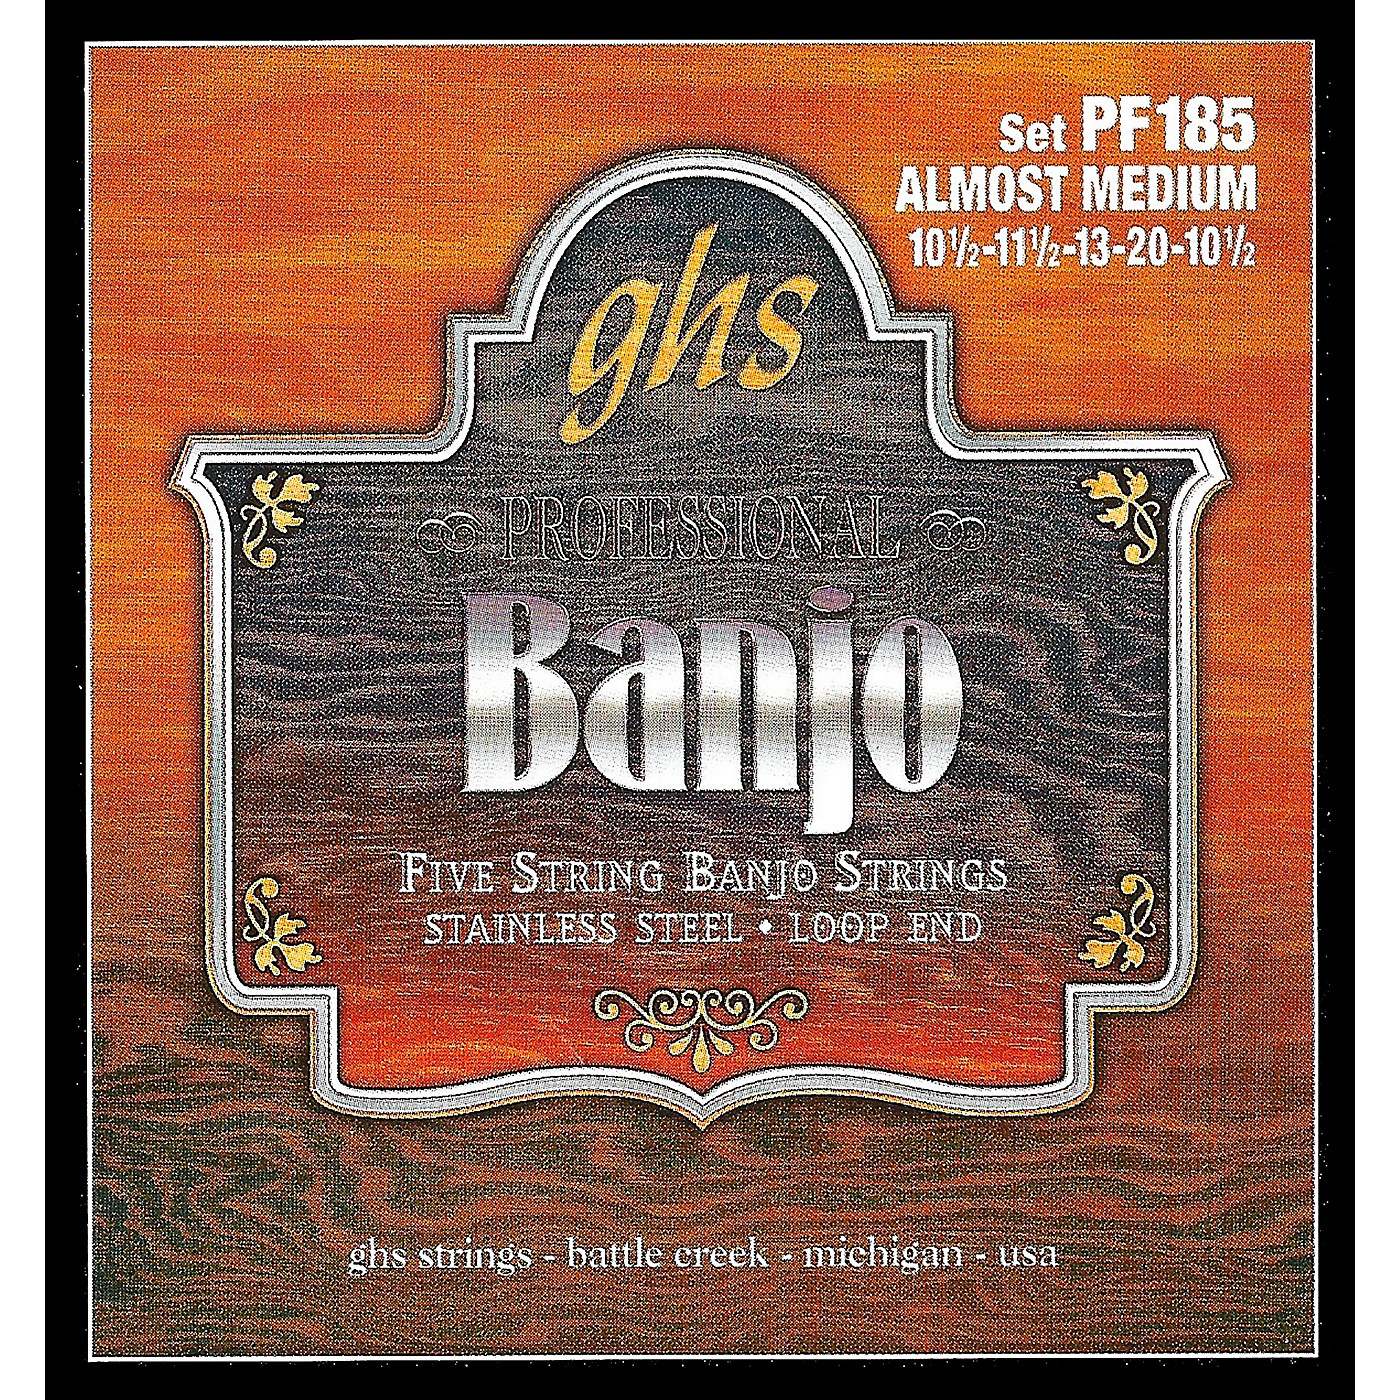 GHS Stainless Steel 5-String Banjo Strings - Almost Medium thumbnail